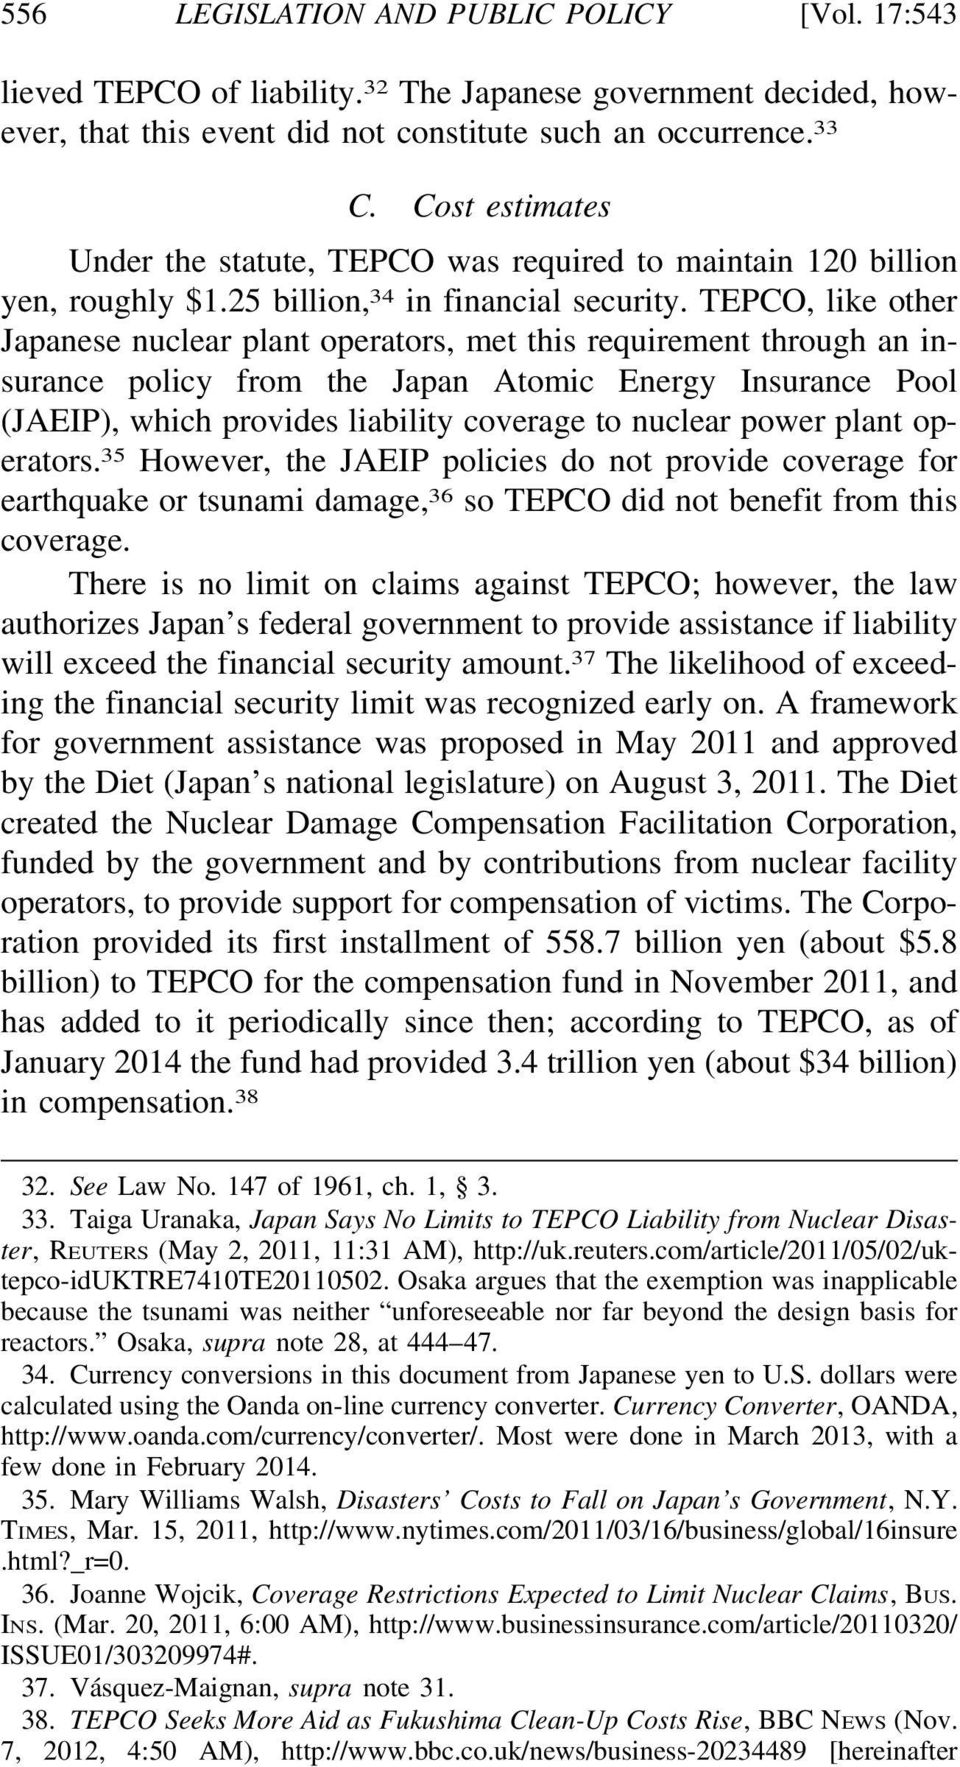 TEPCO, like other Japanese nuclear plant operators, met this requirement through an insurance policy from the Japan Atomic Energy Insurance Pool (JAEIP), which provides liability coverage to nuclear